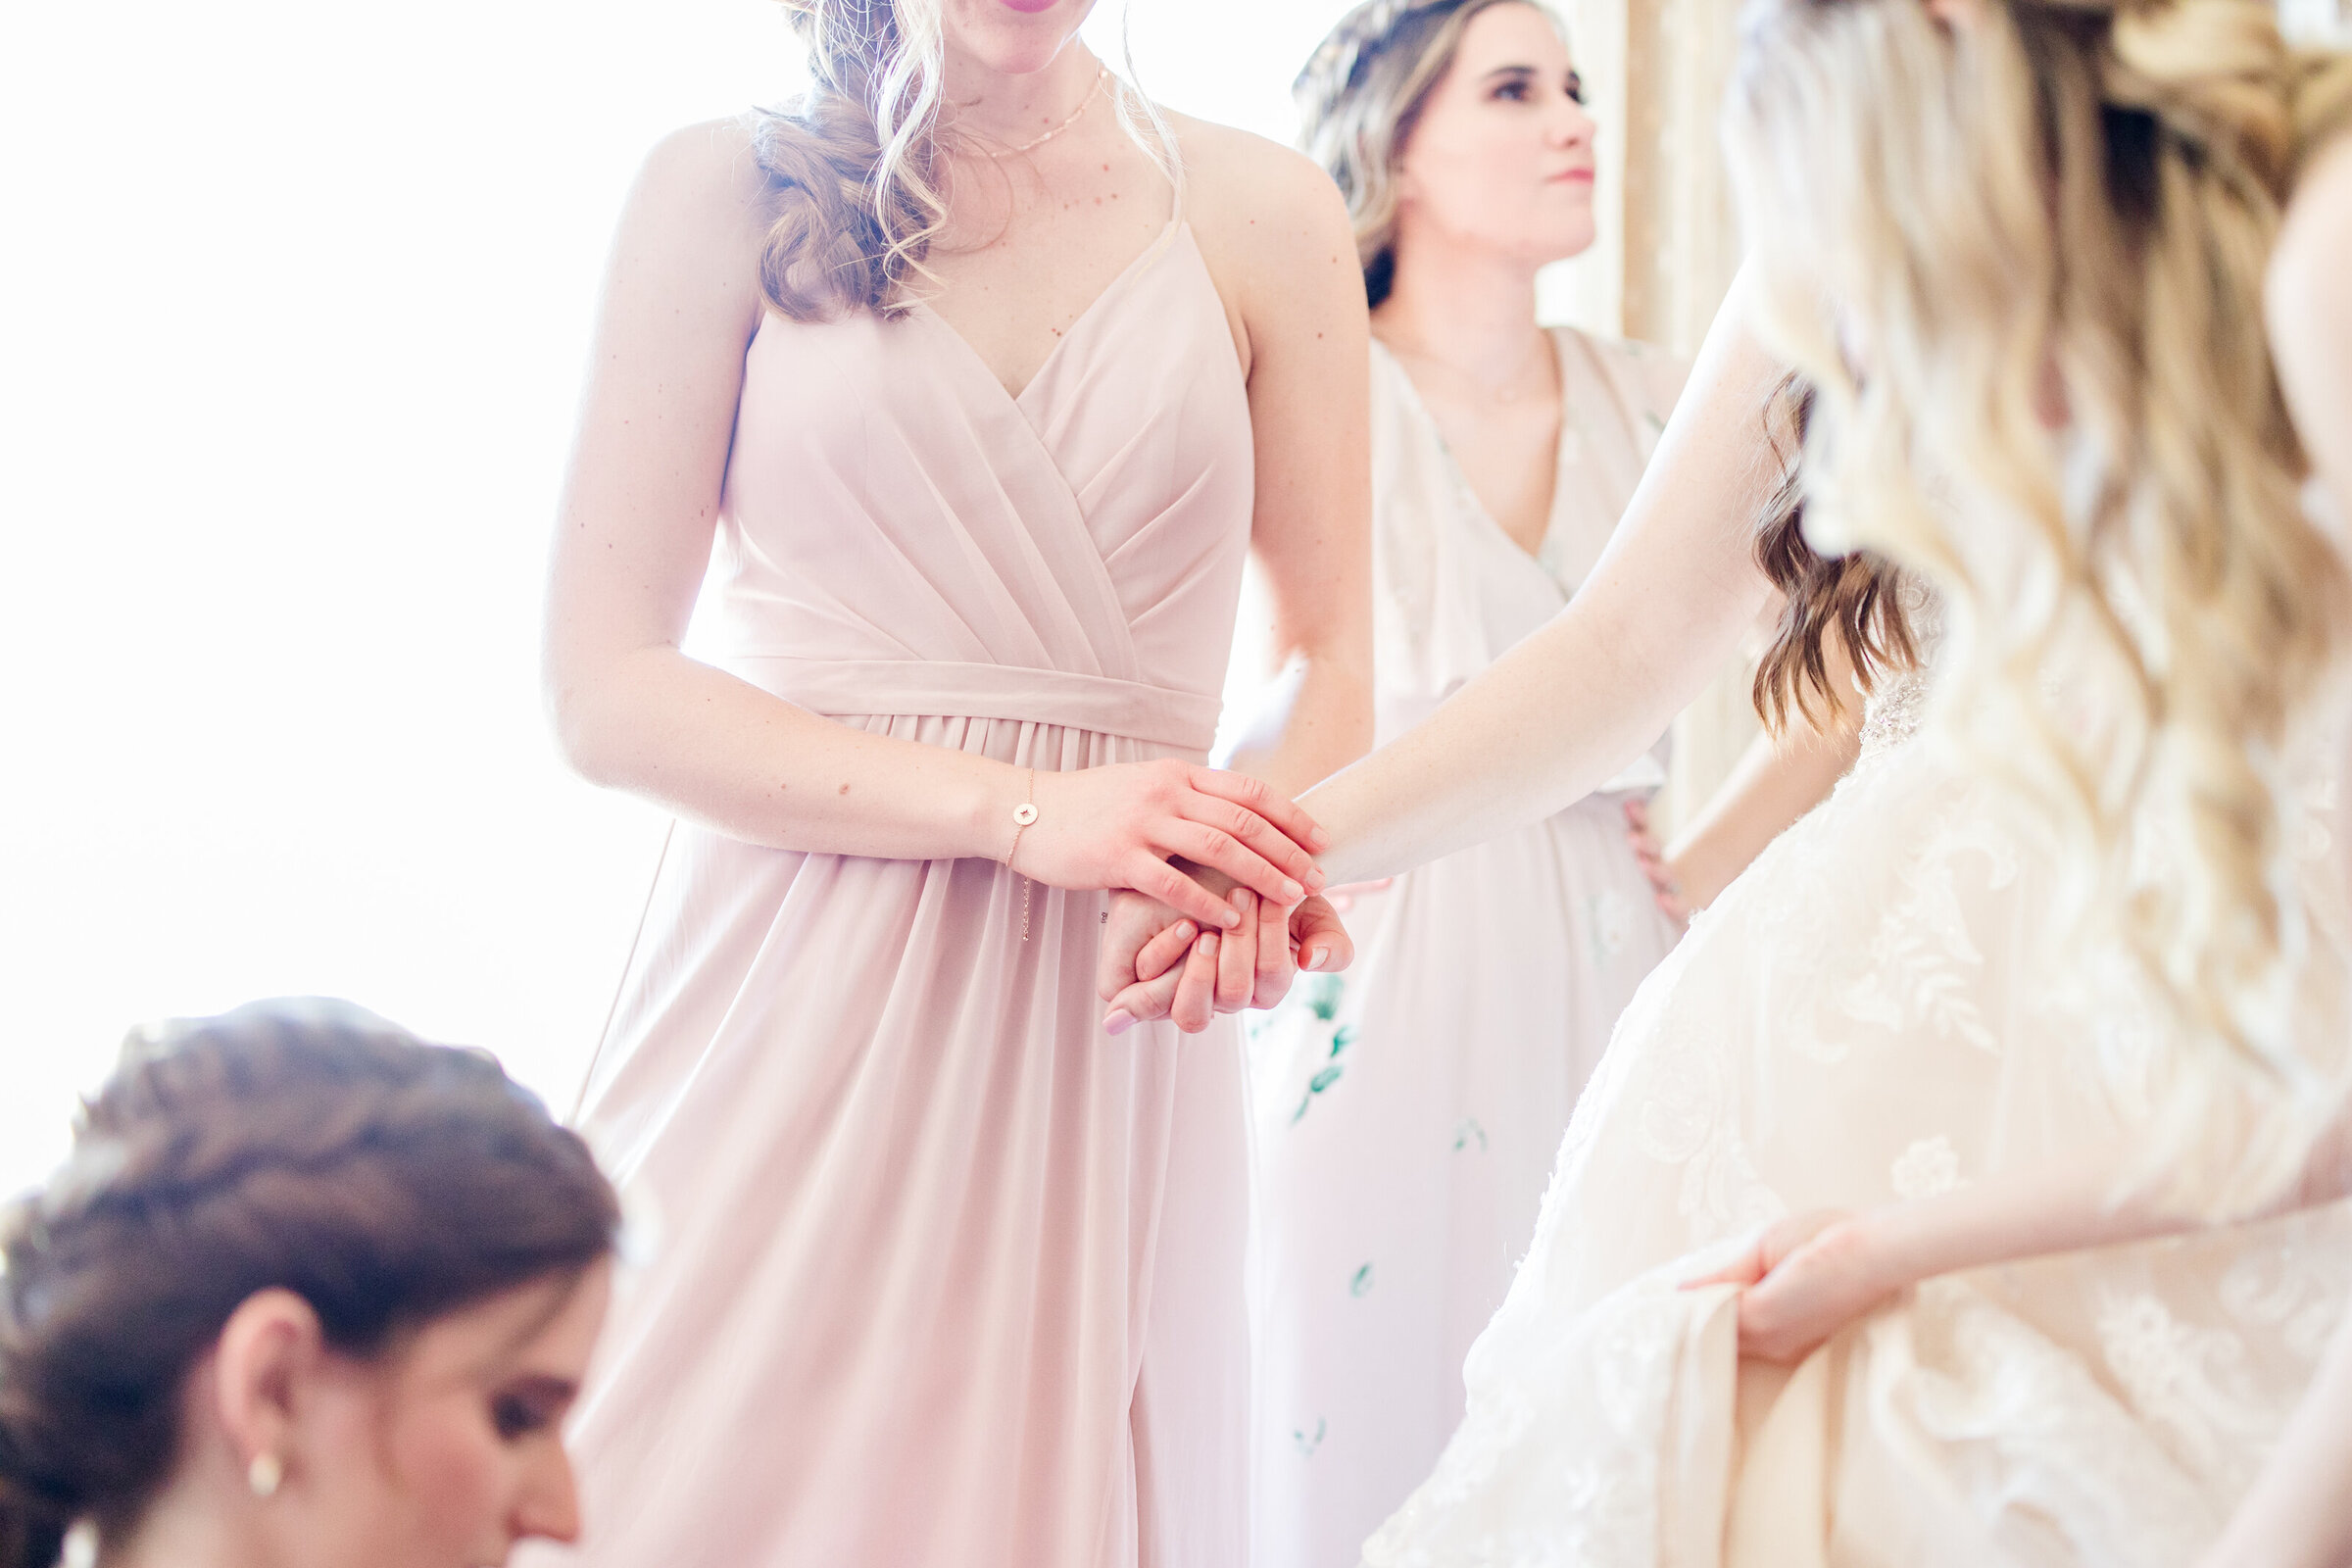 A bride holds the hand of a bridesmaid during an emotional moment